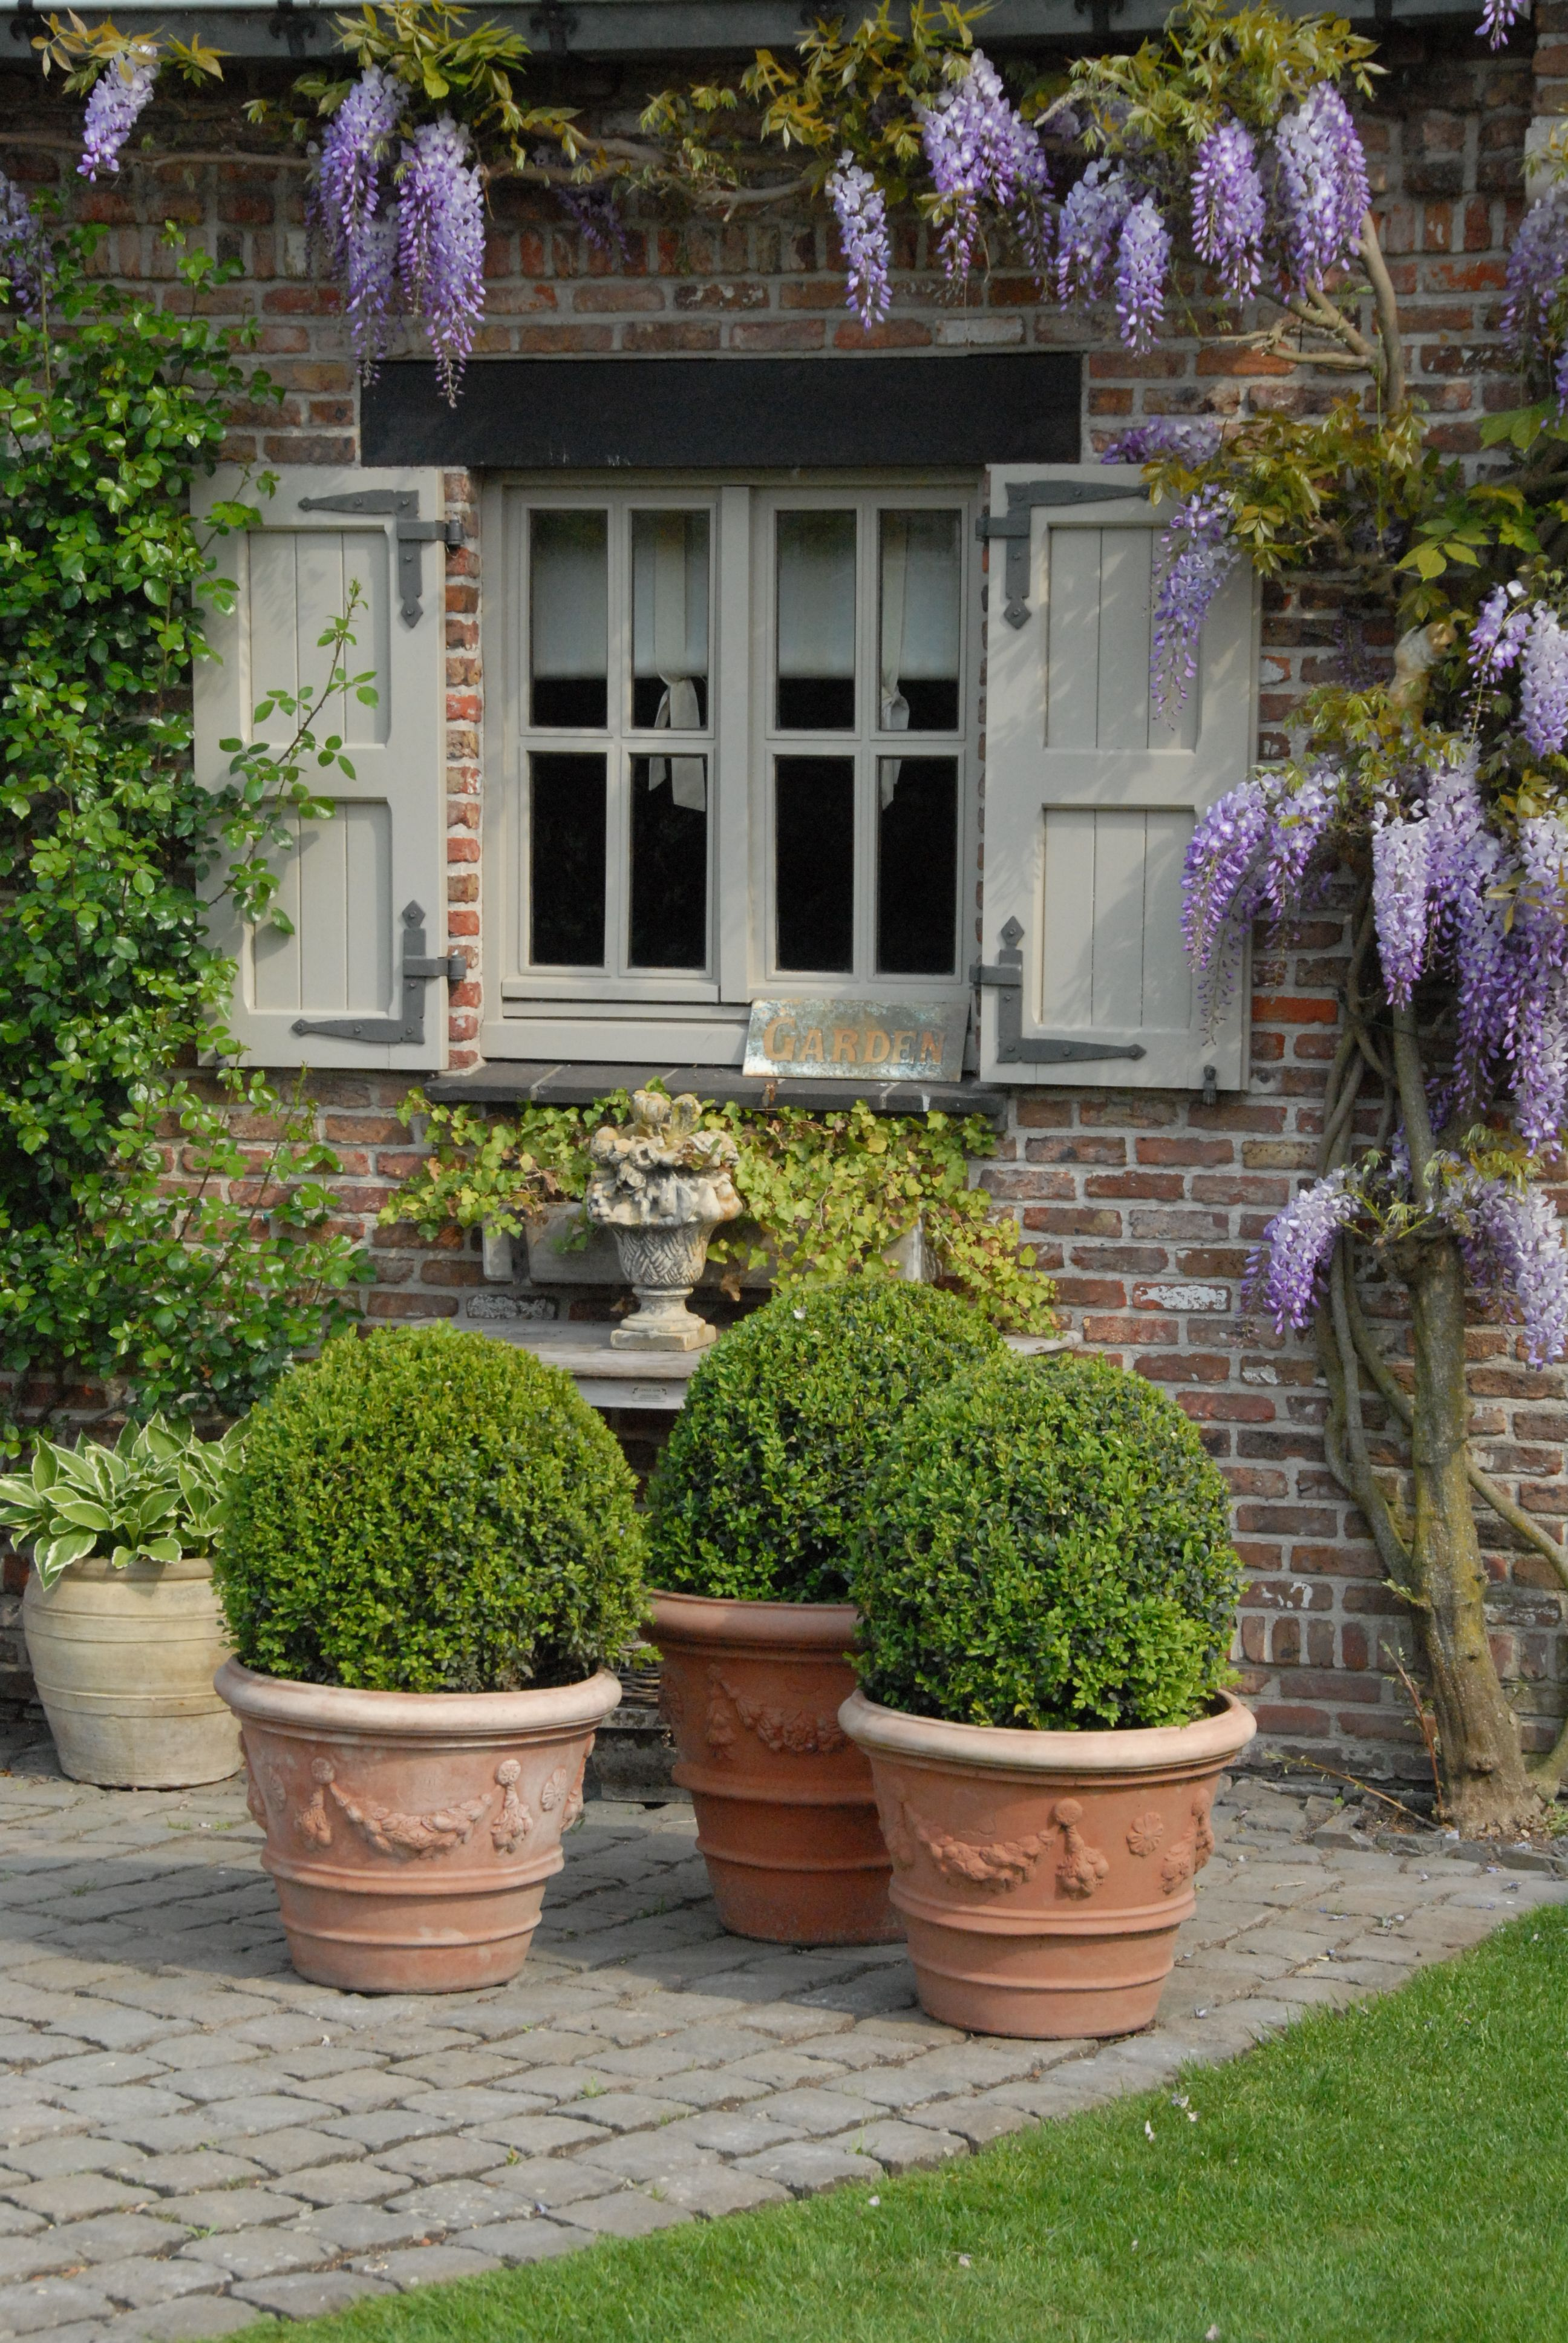 Love the wisteria and boxwoods.